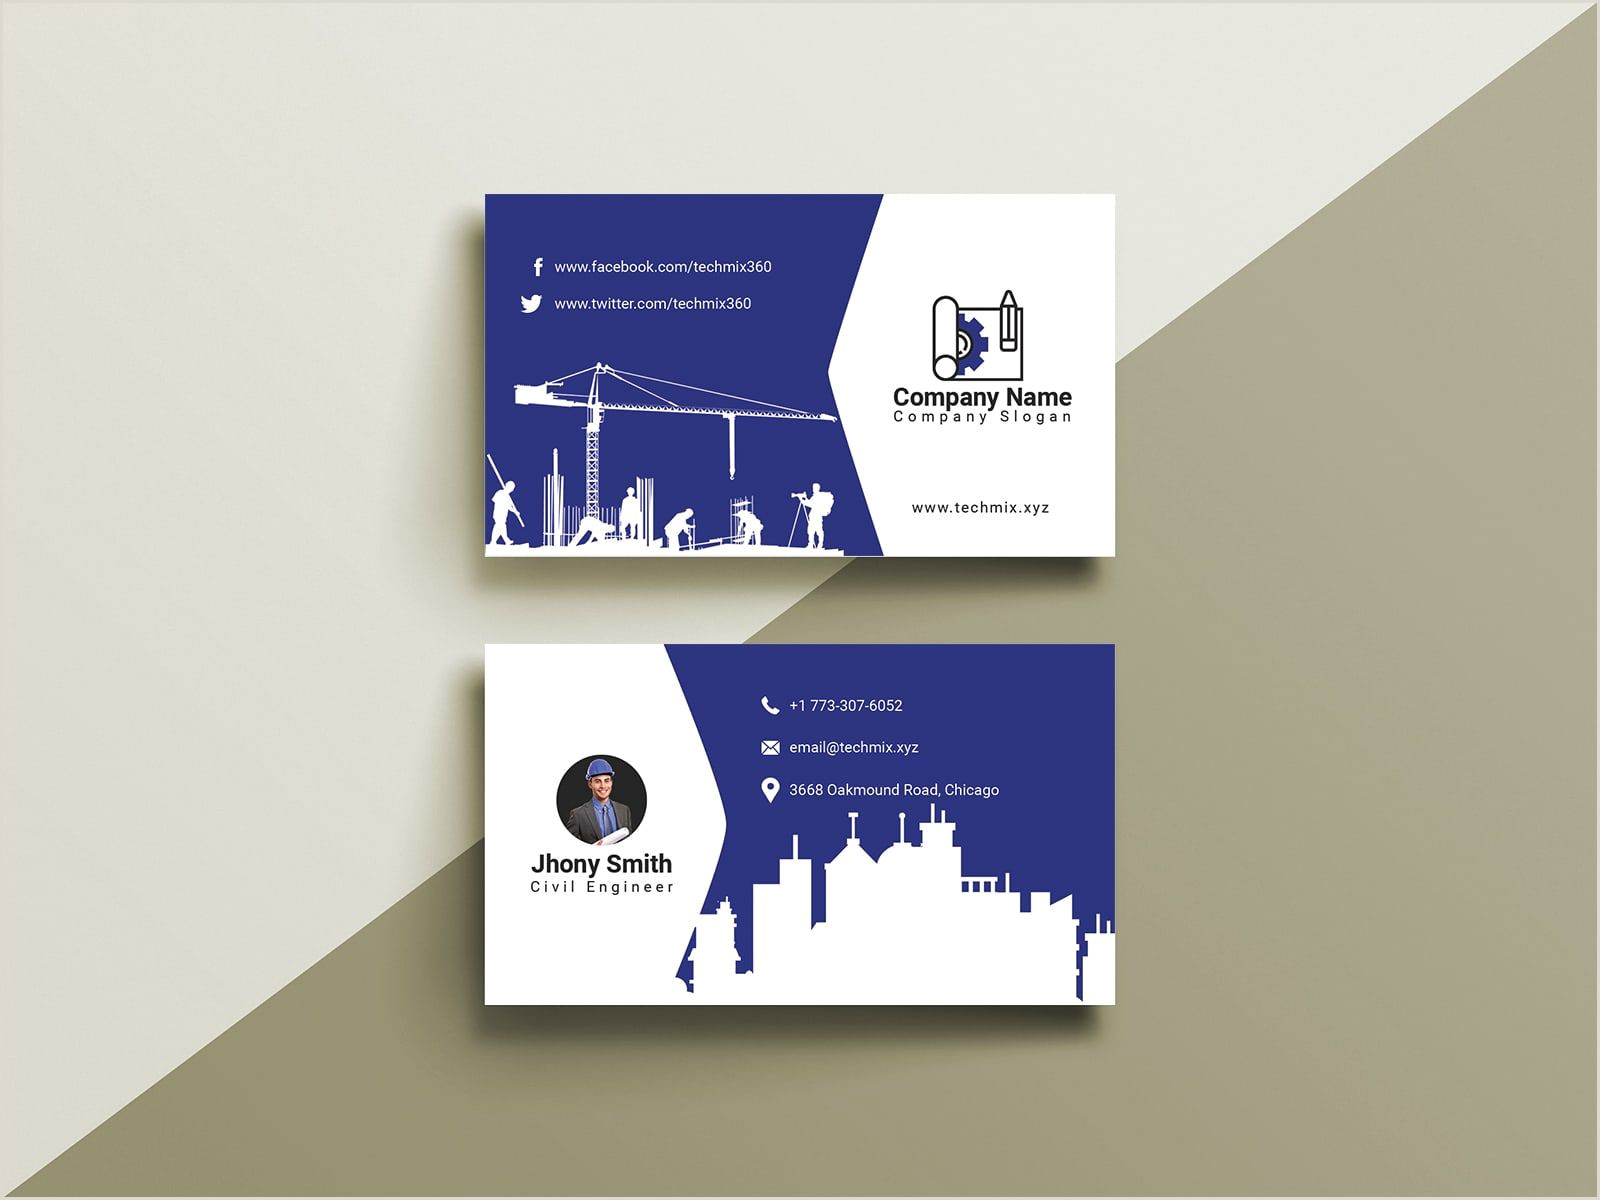 Unique Business Cards Engineering 10 Civil Engineer Business Cards Ideas